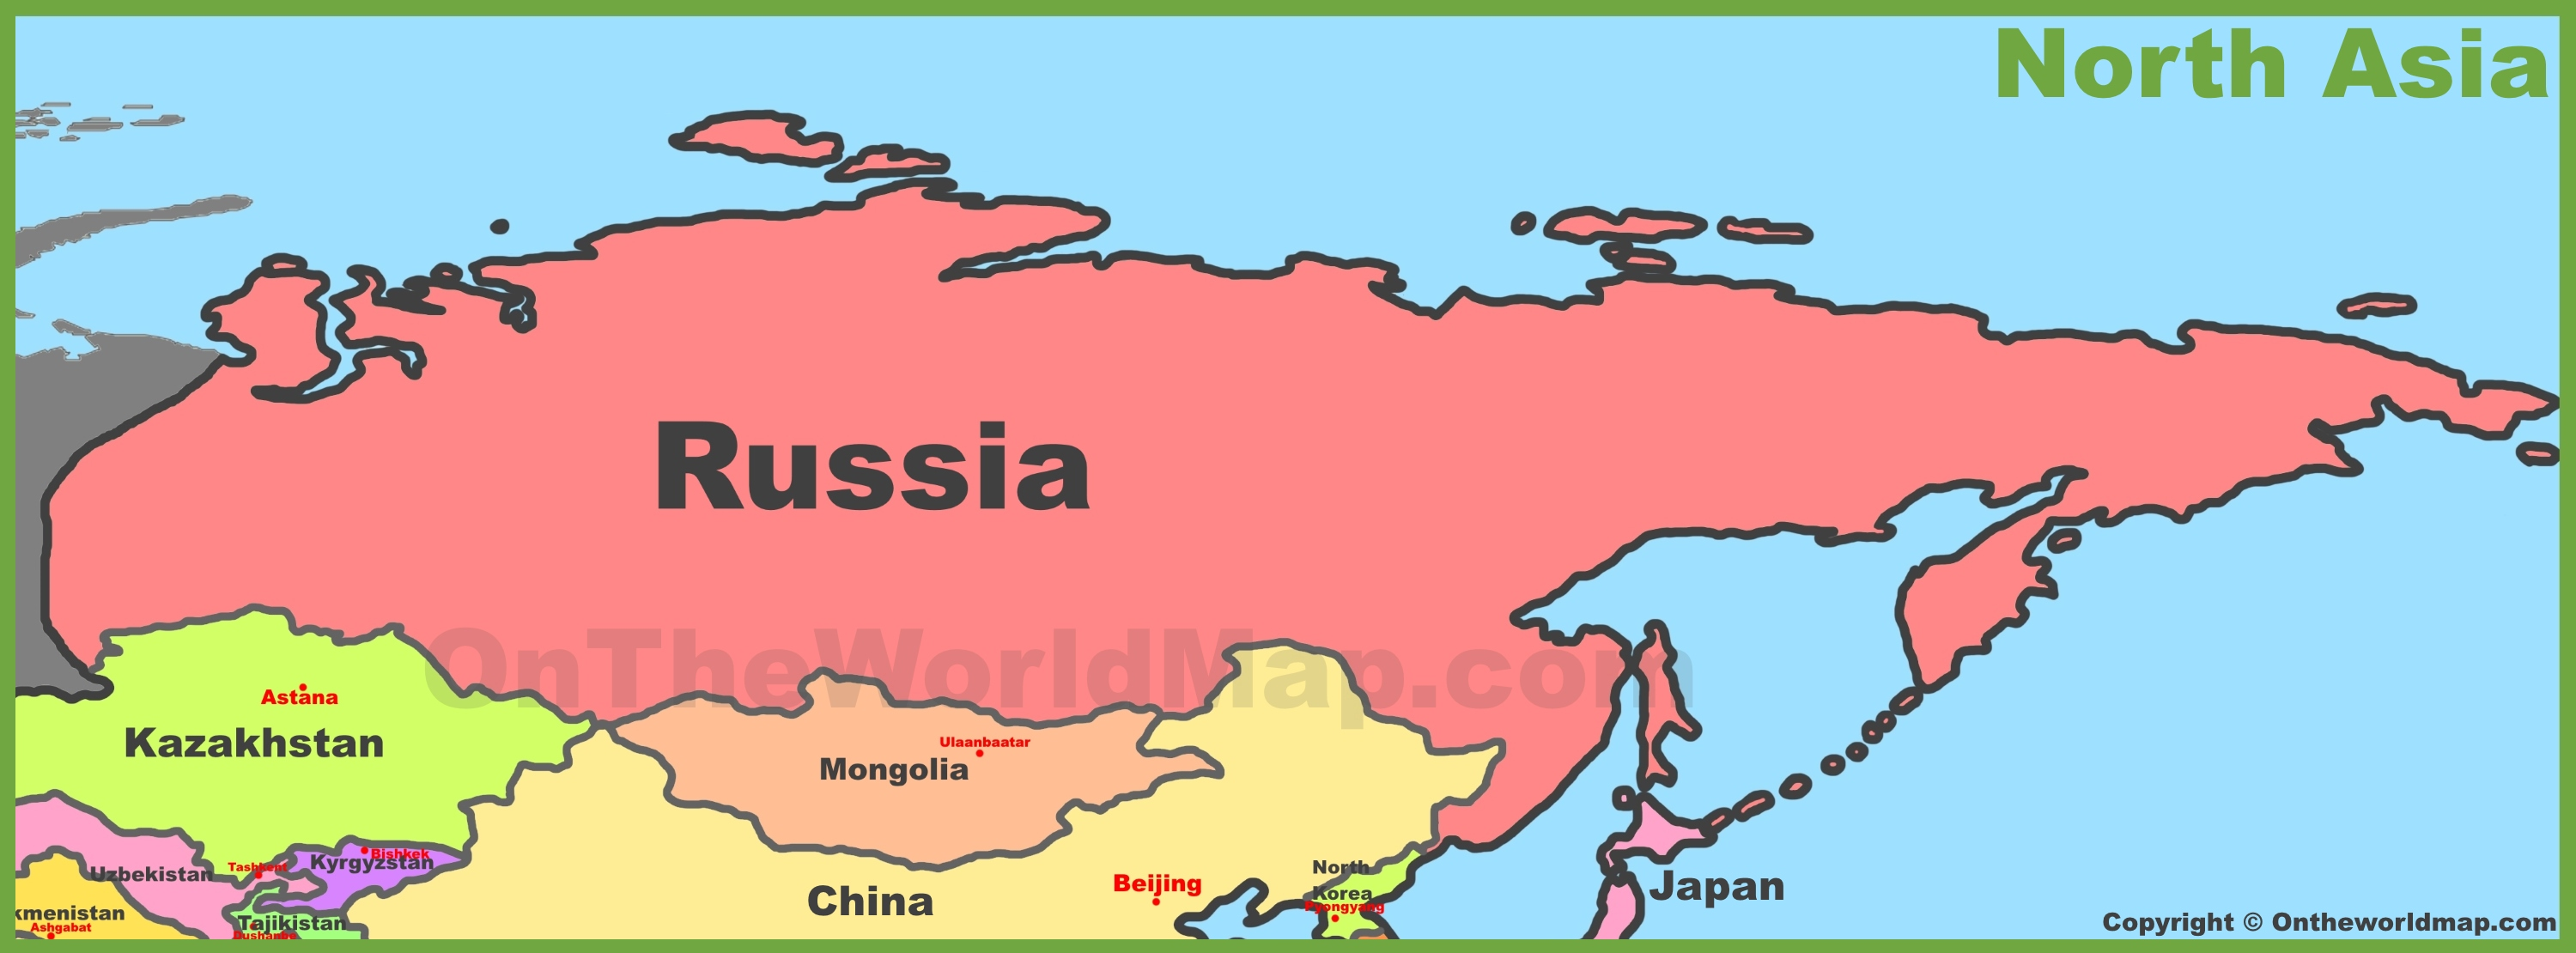 North Asia Map Map of North Asia (Northern Asia) North Asia Map